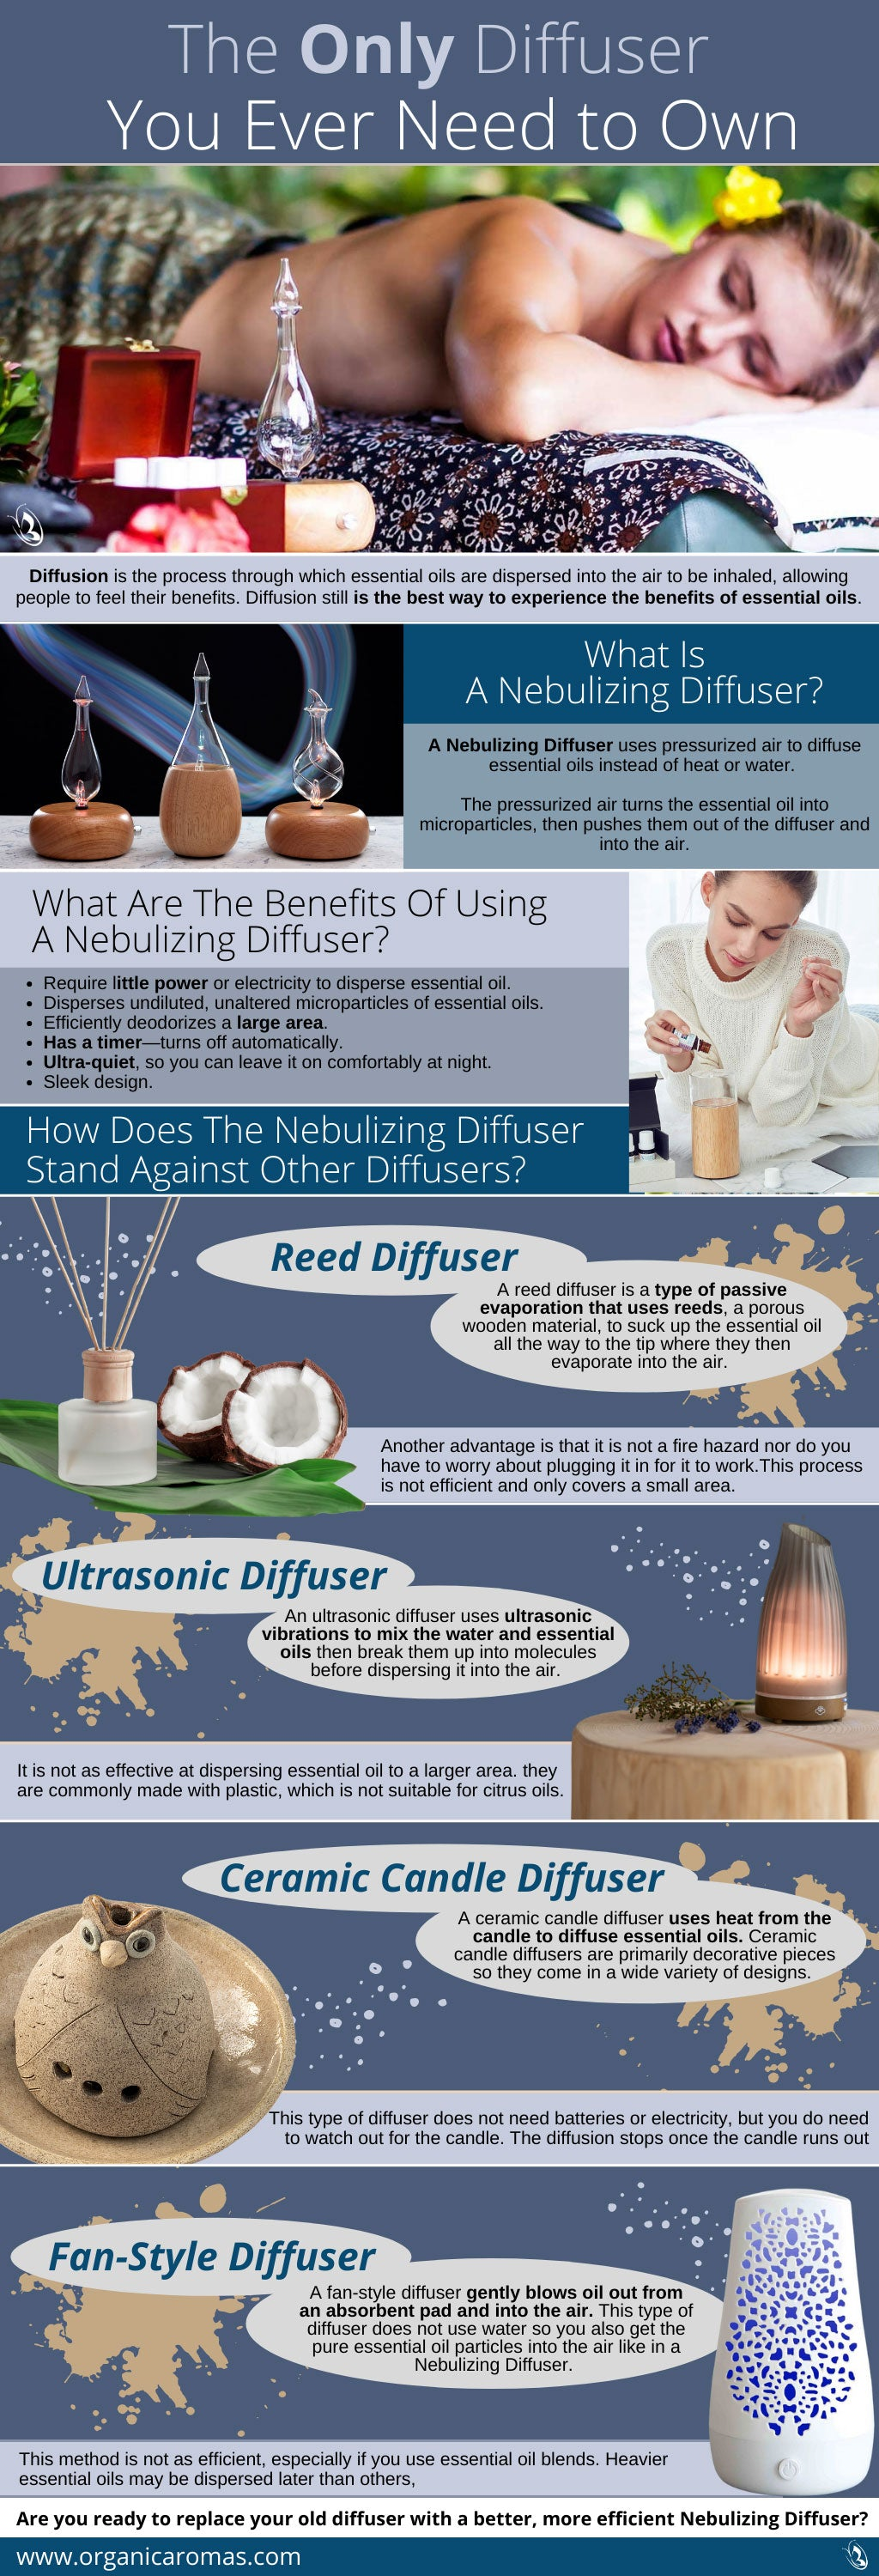 The Only Diffuser You Ever Need to Own